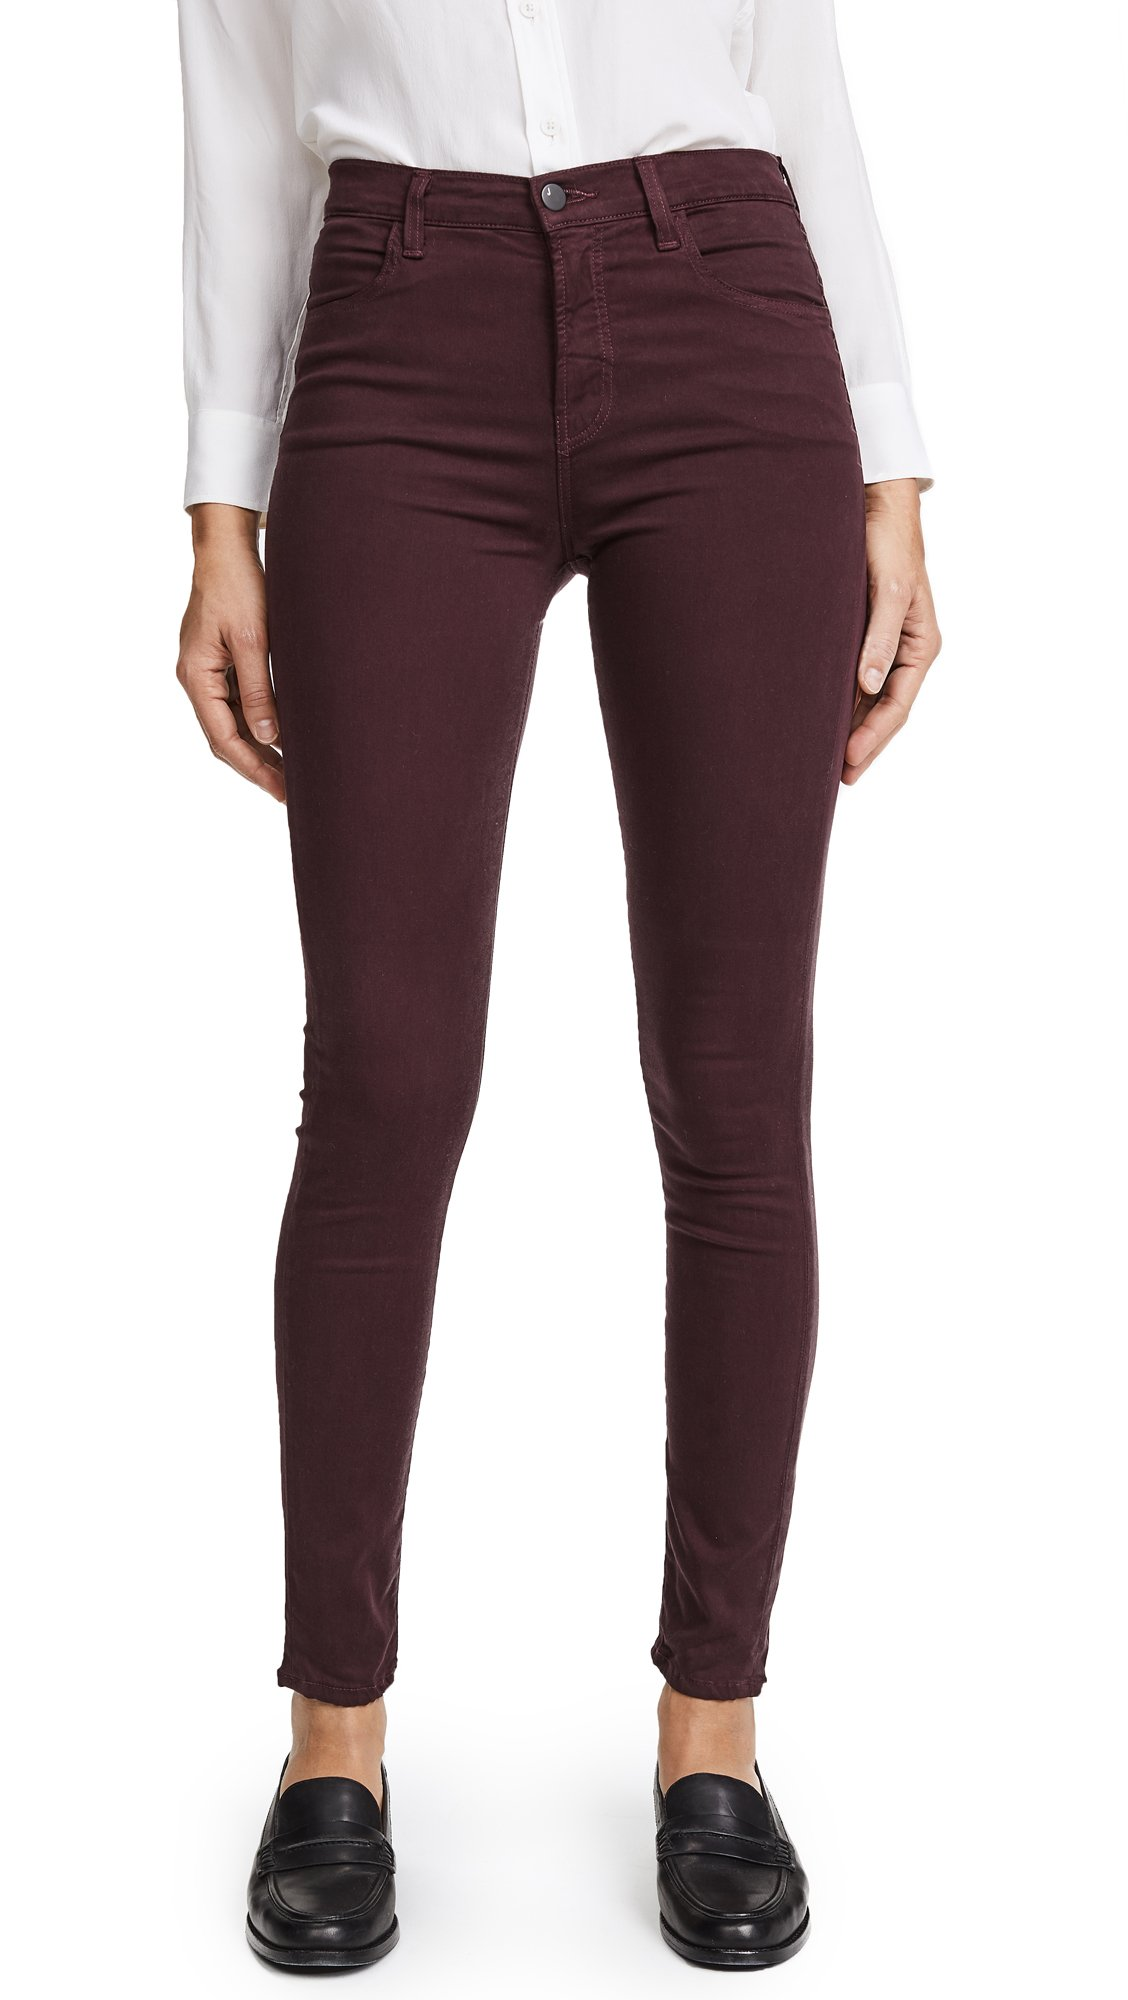 J Brand Women's Maria High Rise Skinny Jeans, Botany, 27 by J Brand Jeans